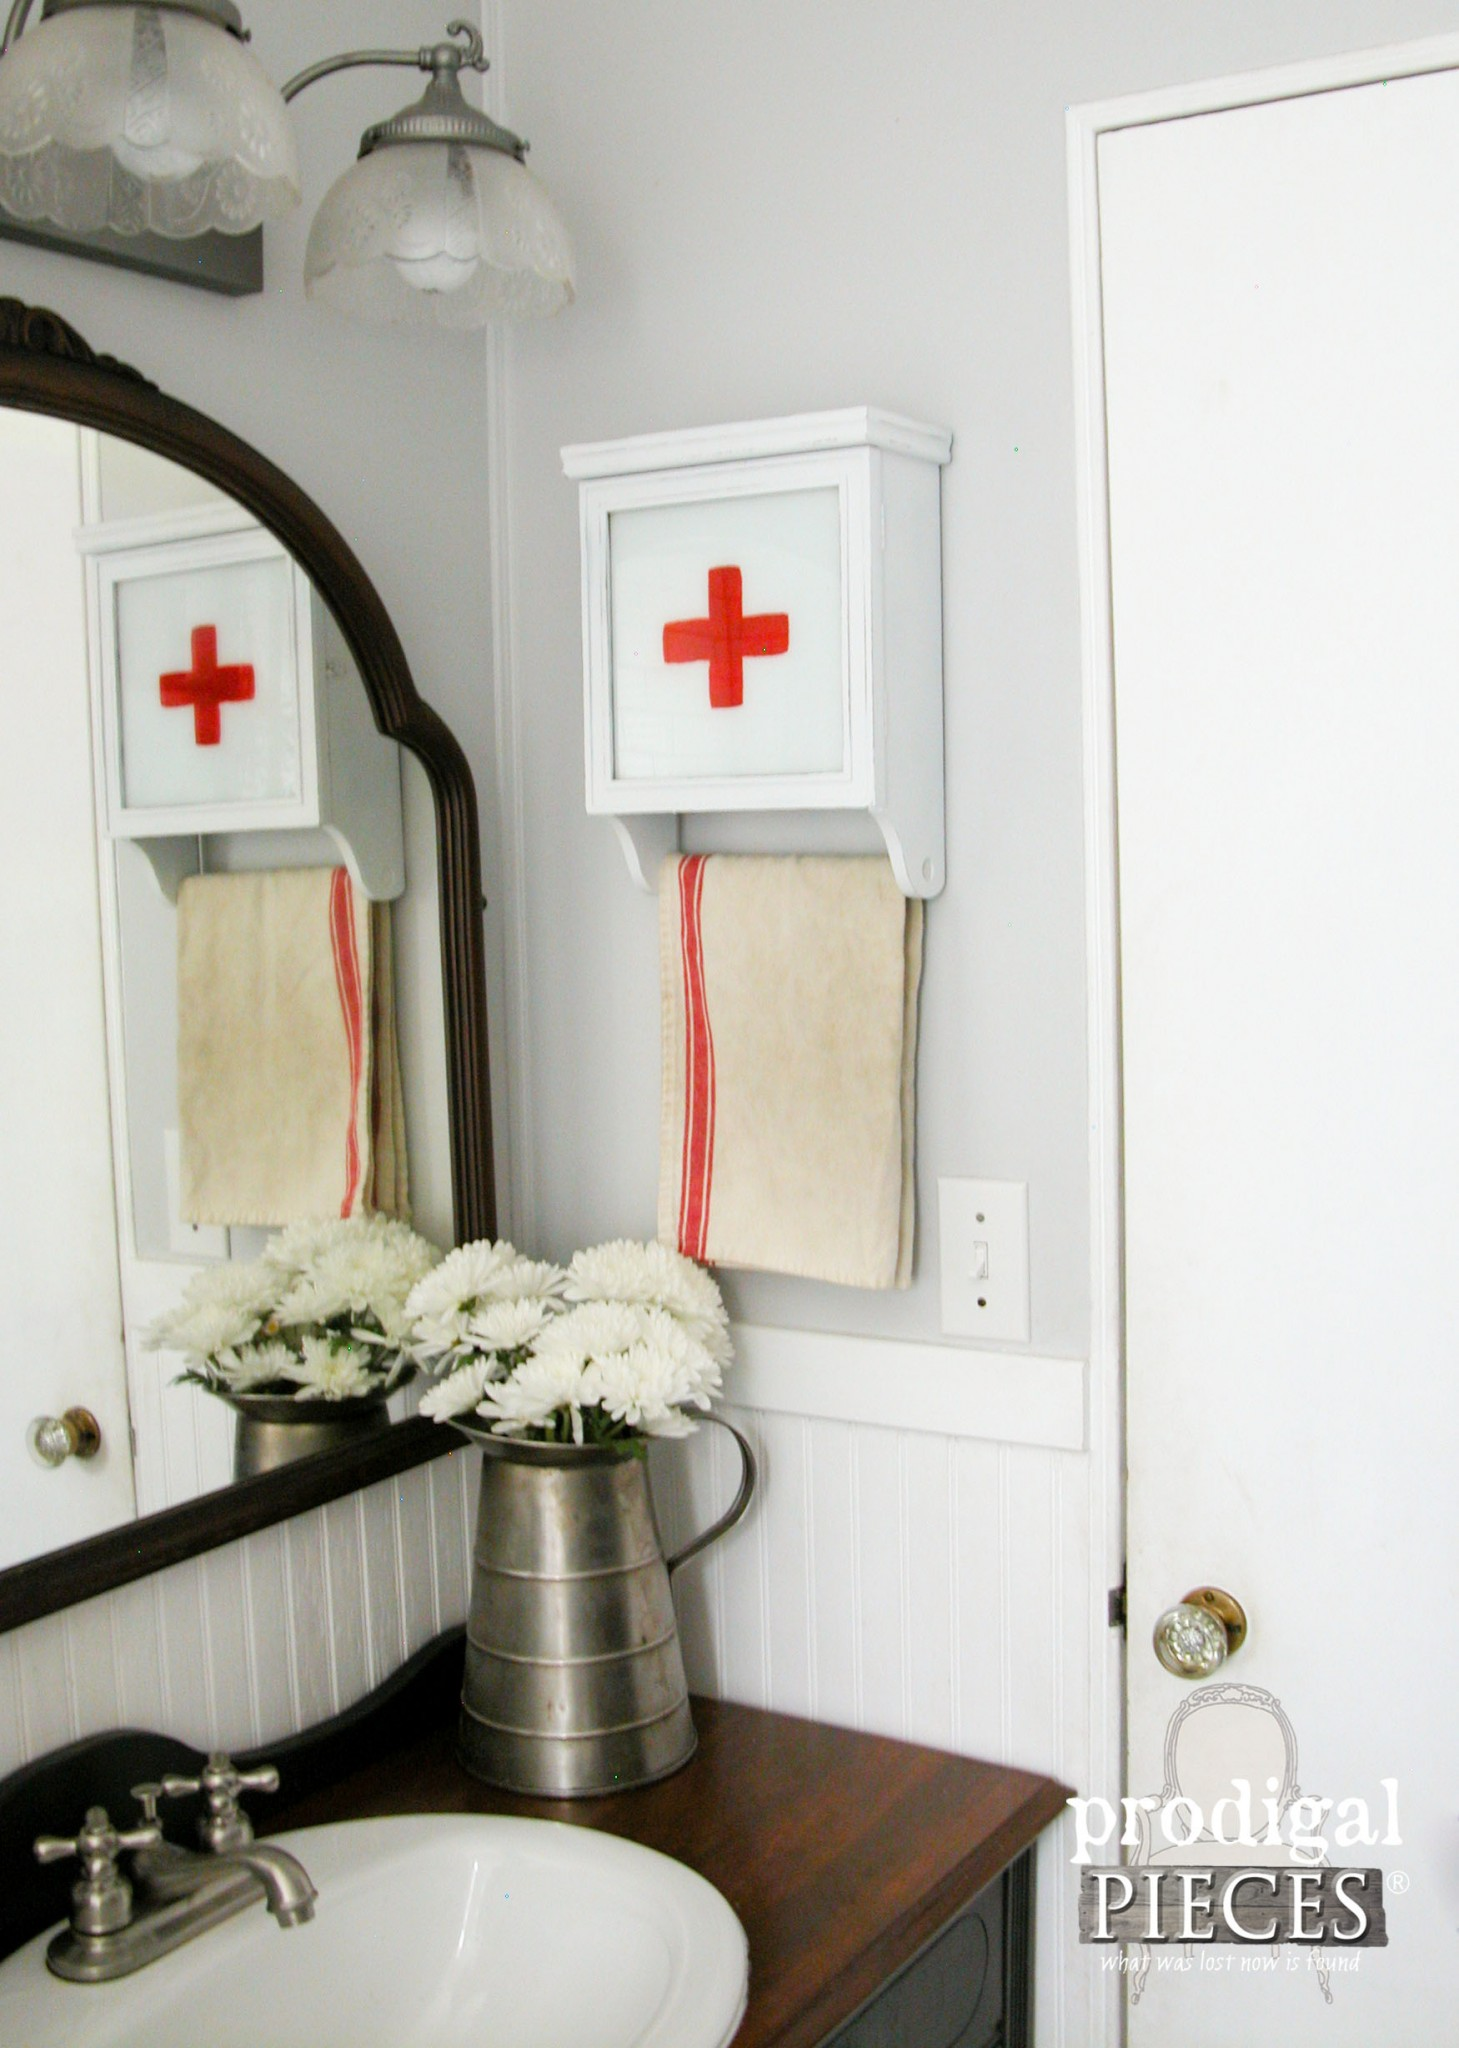 Repurposed Wall Clock into Swiss Medical Cabinet by Prodigal Pieces | www.prodigalpieces.com